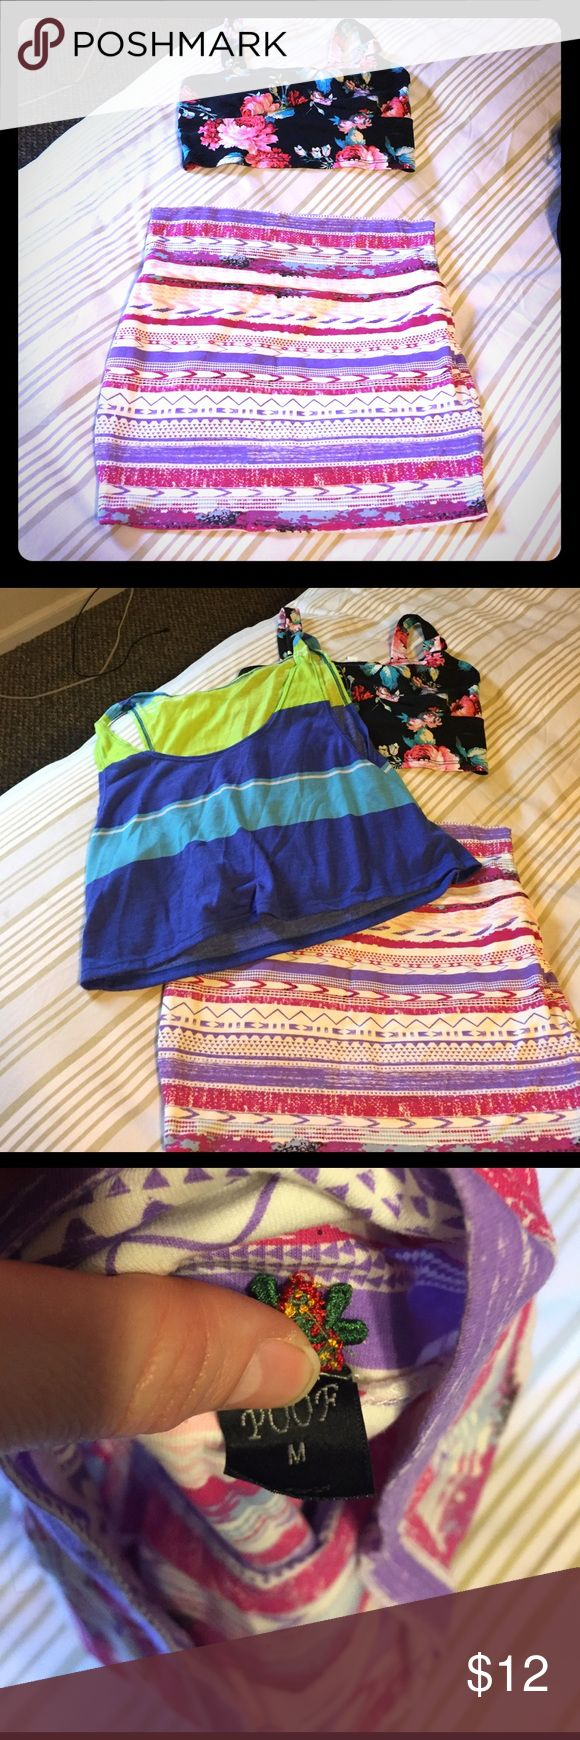 Skirt and crop top bundle Super cute Aztec print skirt with flowery crop top. The skirt is a size medium and the top is a small. I am also throwing in another crop top just for free! They have been worn a couple of times but in great condition Skirts Mini